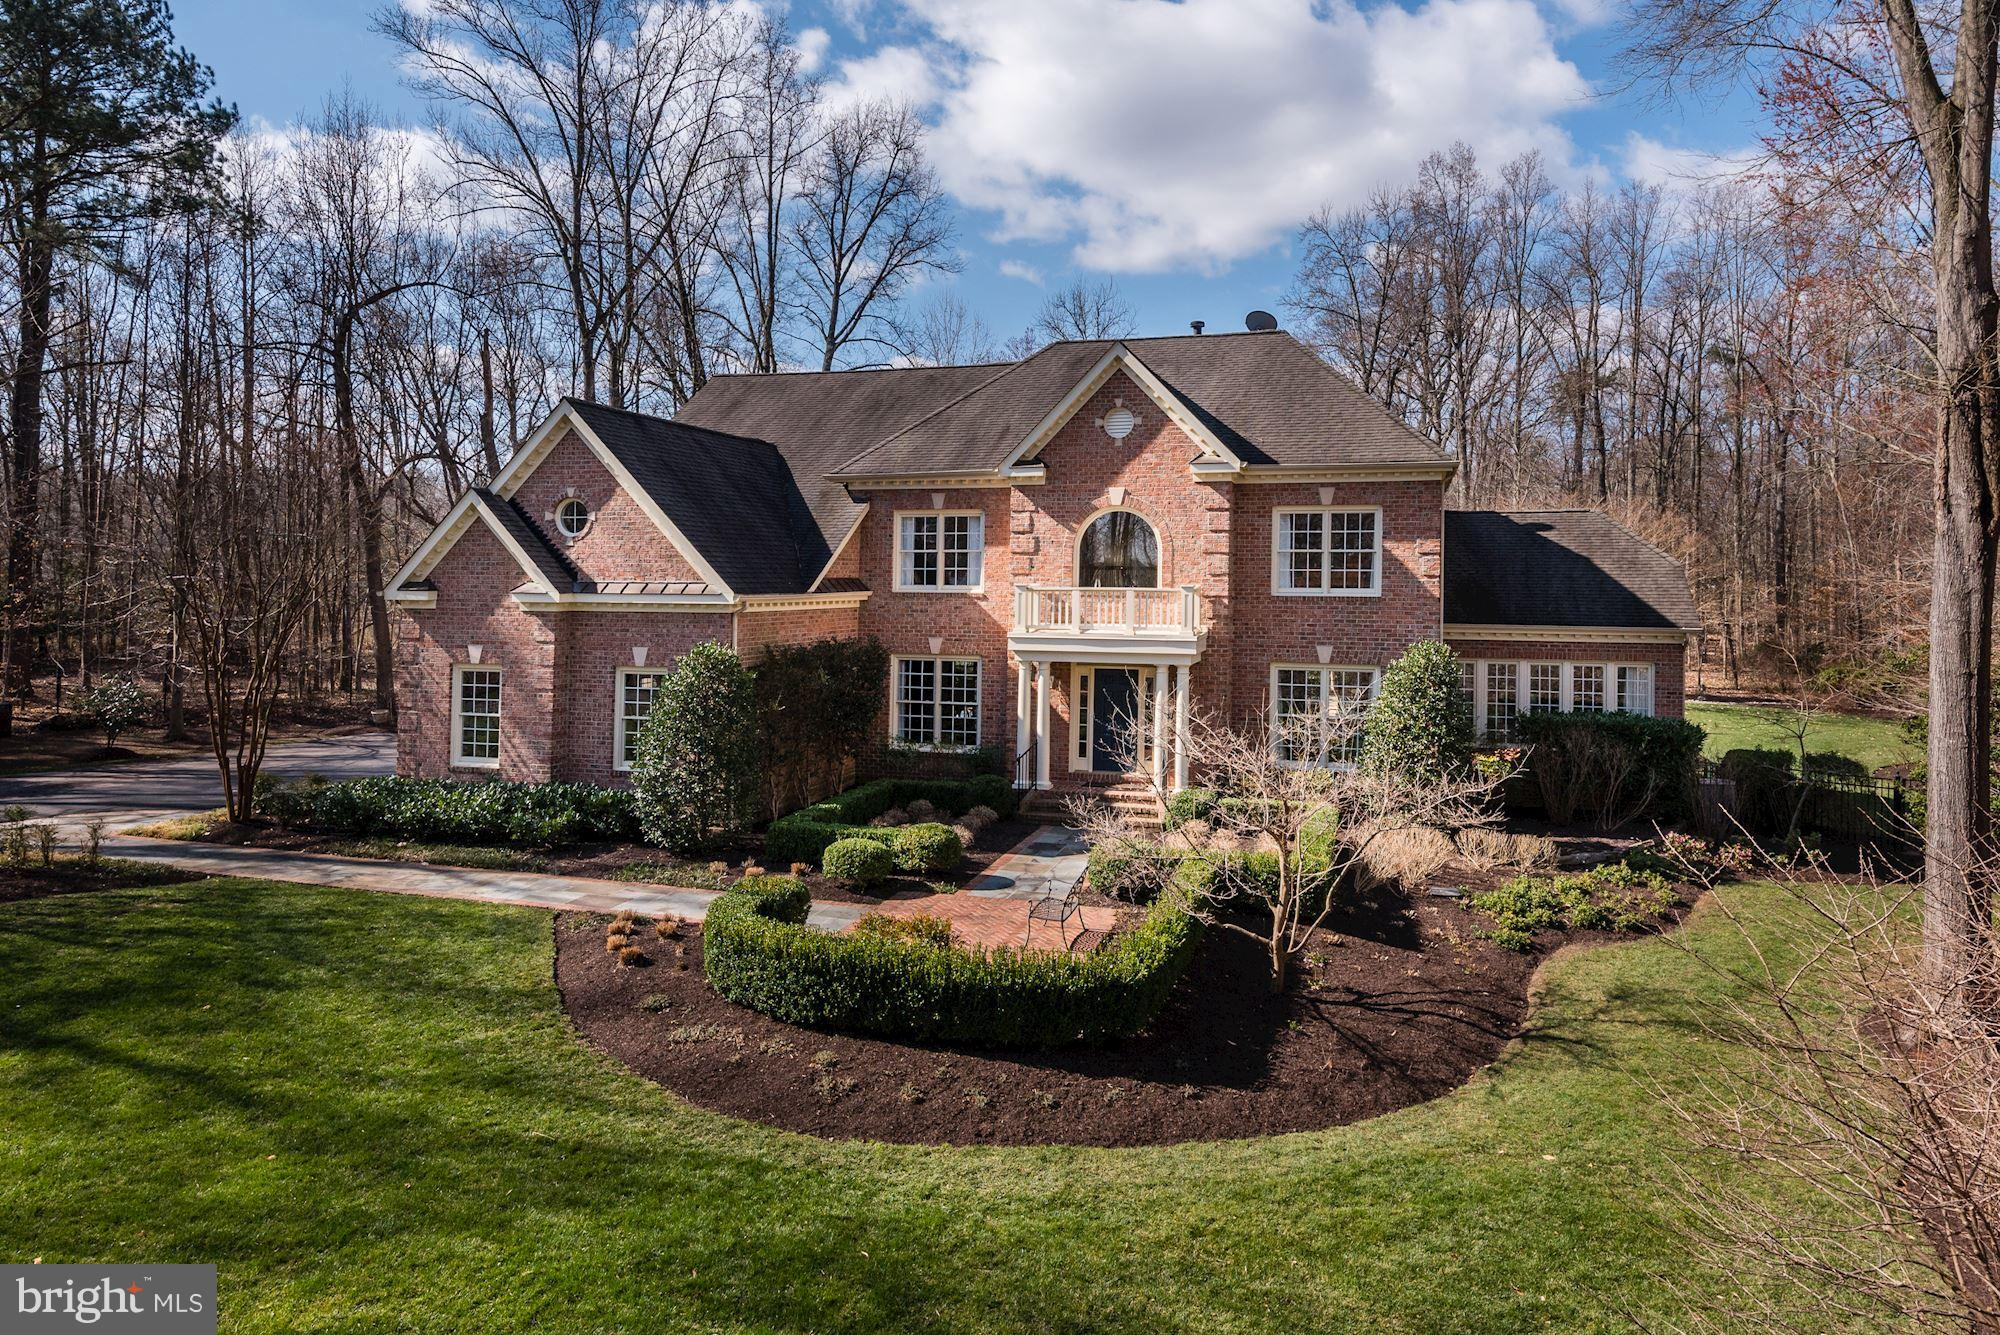 Stunning 6000sqft 5br, 5ba, 3 Car Gar Custom Built SF Home in Gated Community On The Potomac! Elegant Main Level Perfect for Entertaining W/Gourmet Kitchen, Hardwood Floors, Spacious MBR W/Sitting Rm, Huge Walk-in Closet & Luxury MBR Bath! Lovely Sunroom W/Full Bath, Professionally Landscaped, Heated Pool, Full Fin Basement W/Media, Billiard & Workout/Sauna Rooms! 3 Car Garage! Boat Dock & Lift!